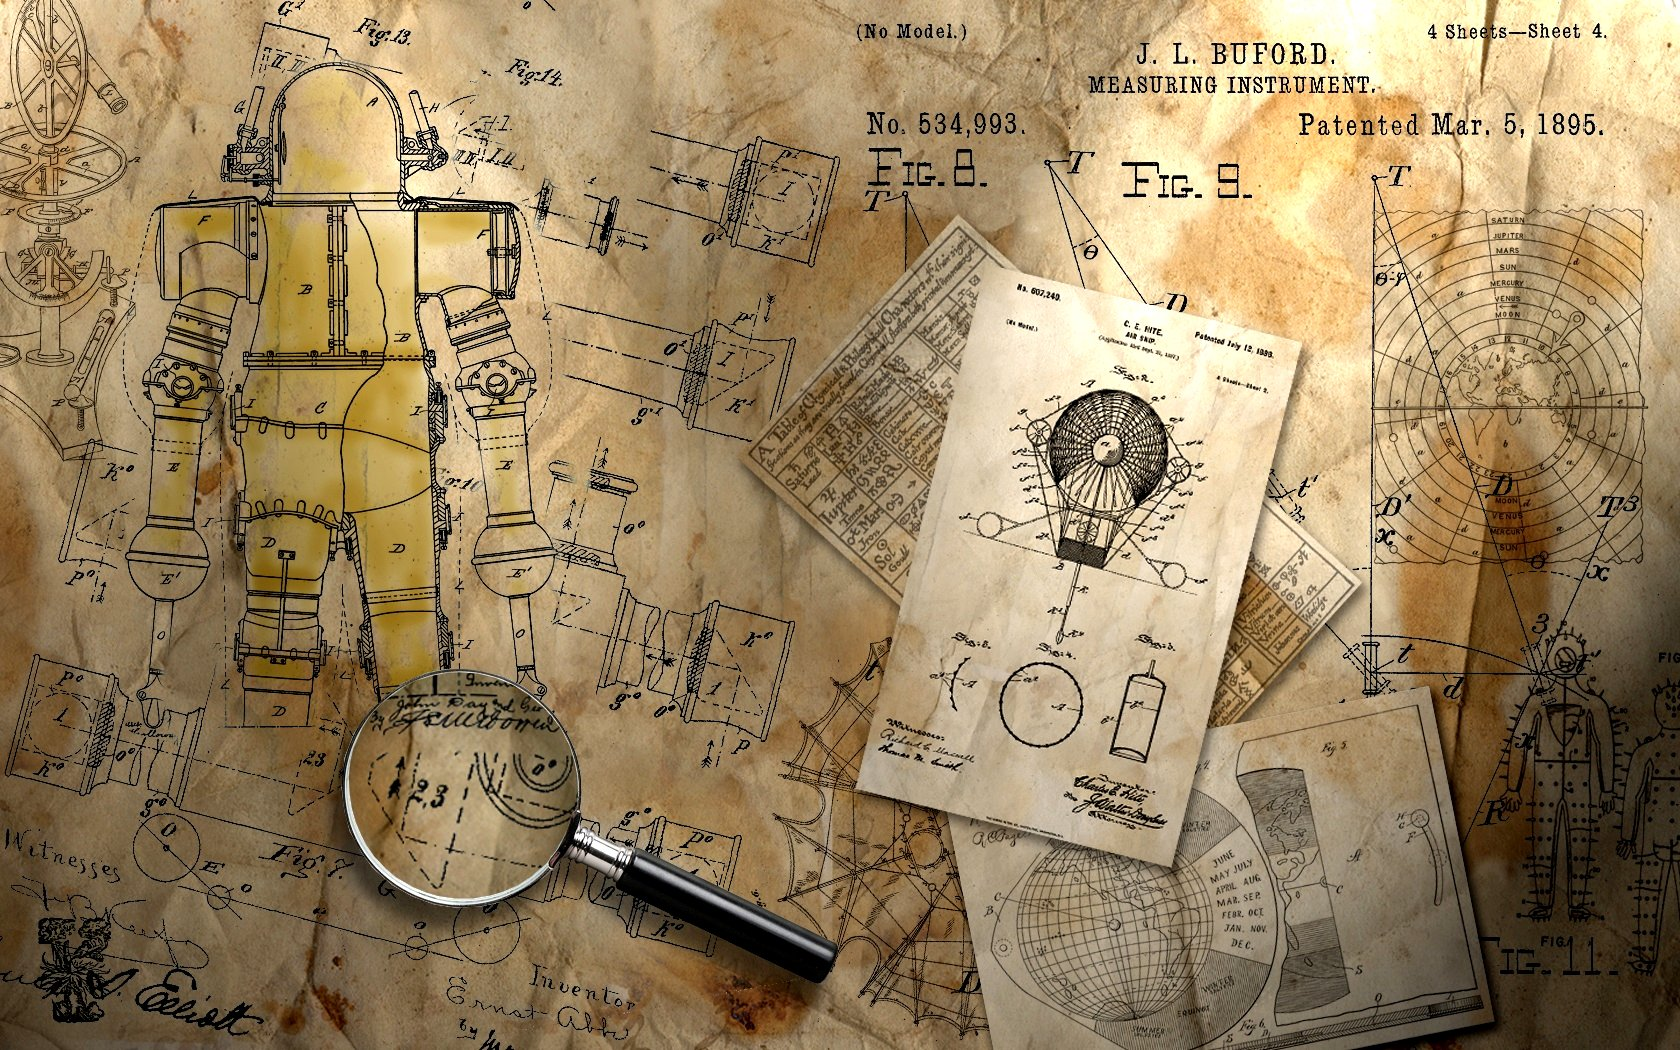 SteamPunk [Wallpaper] [HighDefinition] - Taringa!